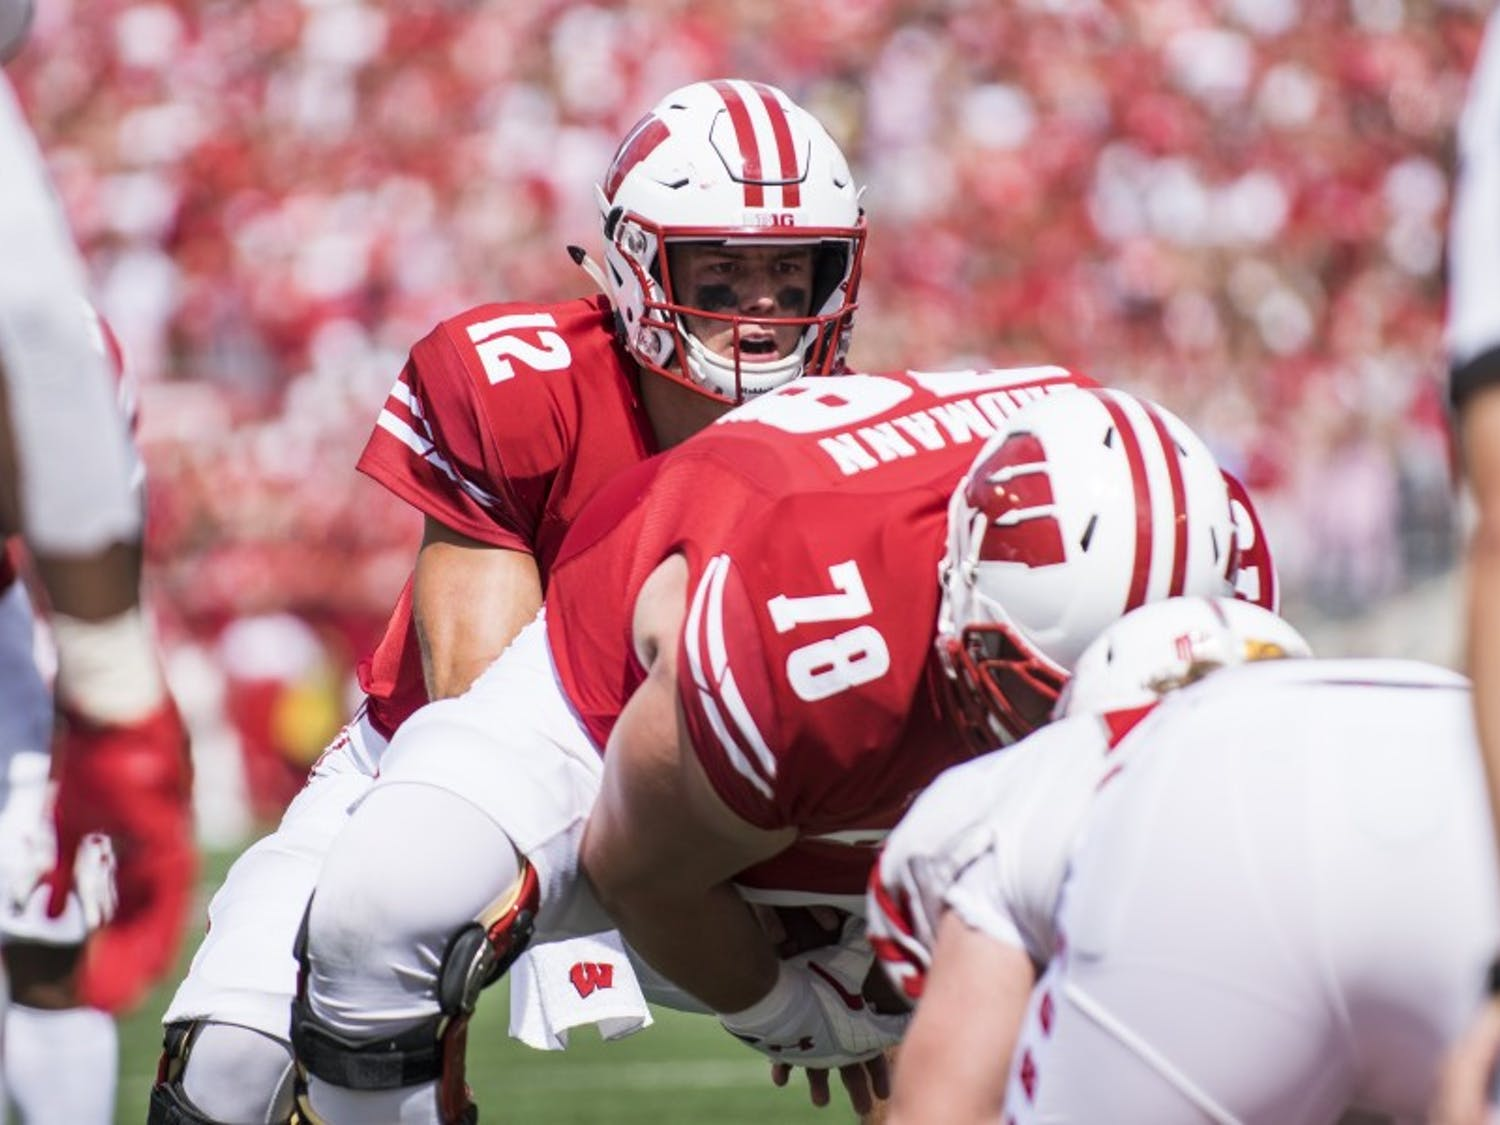 Quarterback Alex Hornibrook is questionable against No. 21 Penn State, one of the many players including senior nose tackle Olive Sagapolu who may be out in this game.